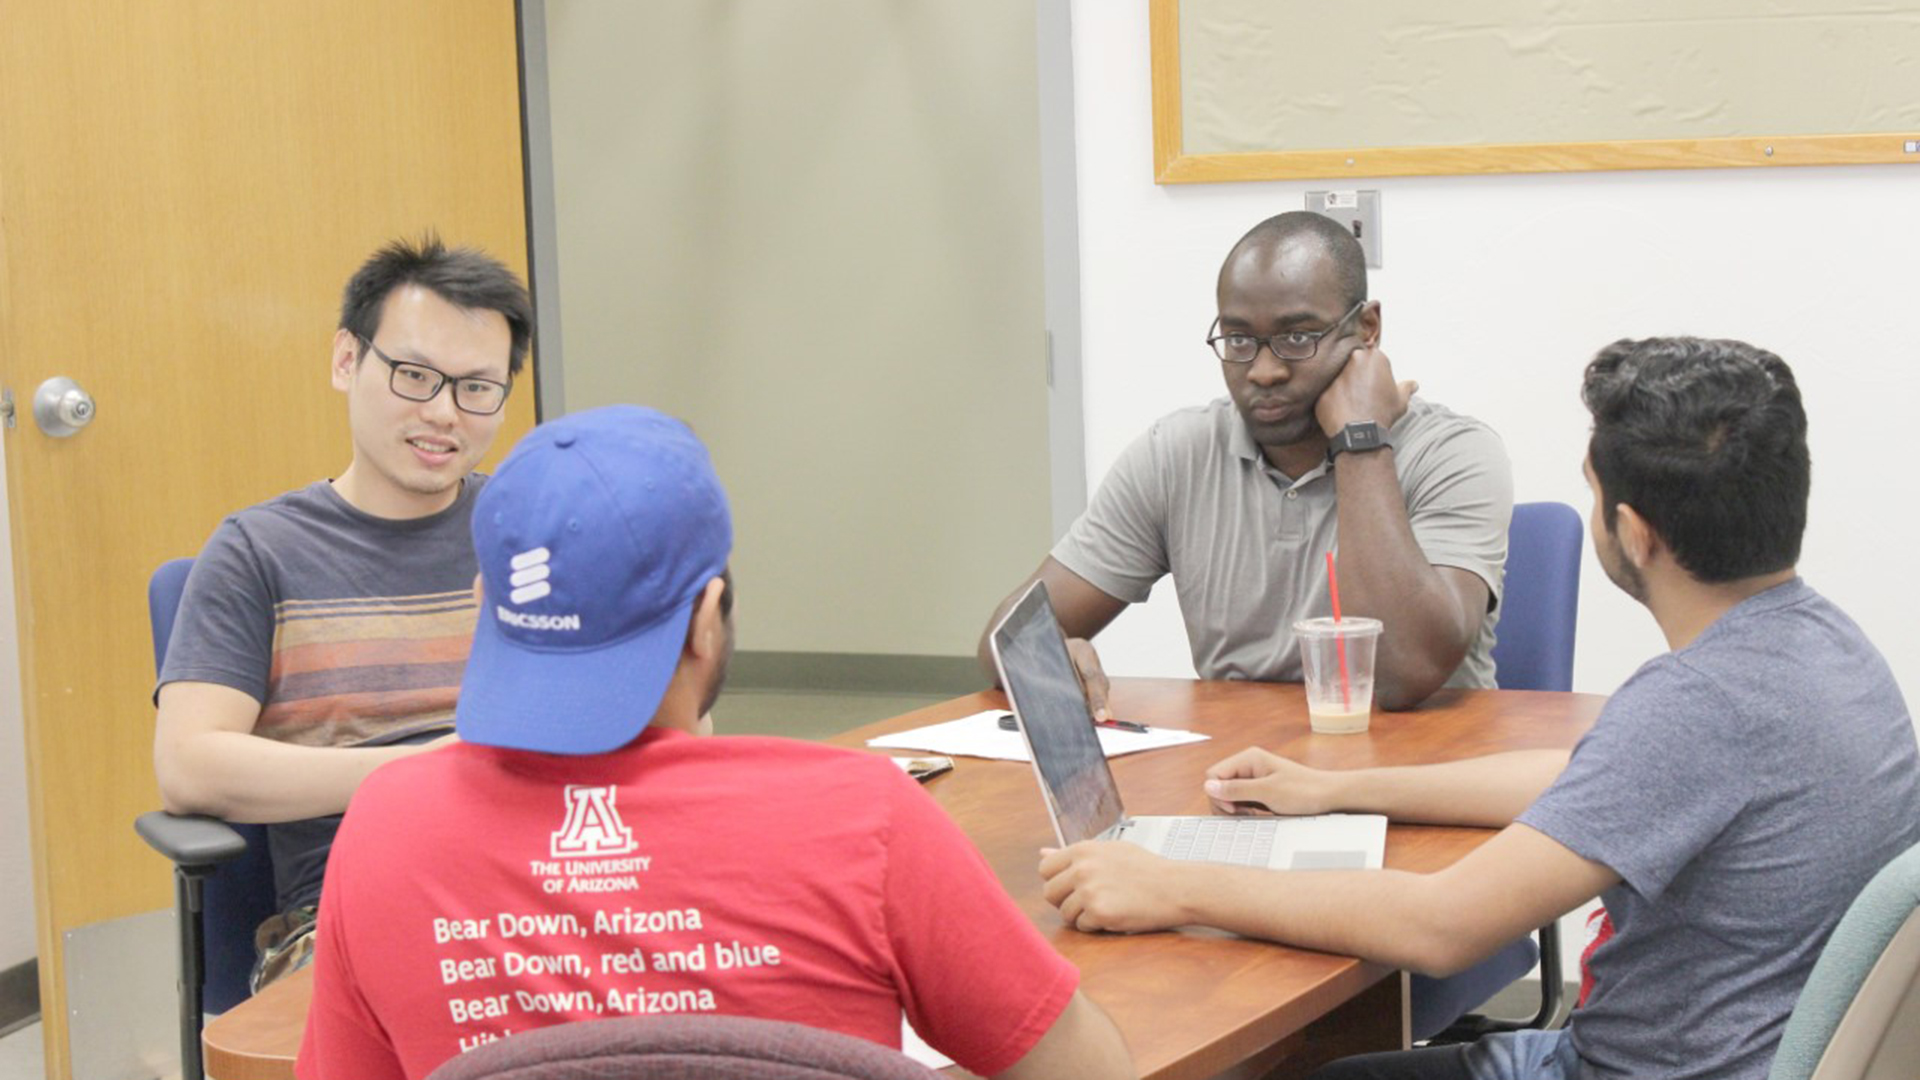 Tosi Adegbija, center, listens as UA students discuss computer engineering proposals.